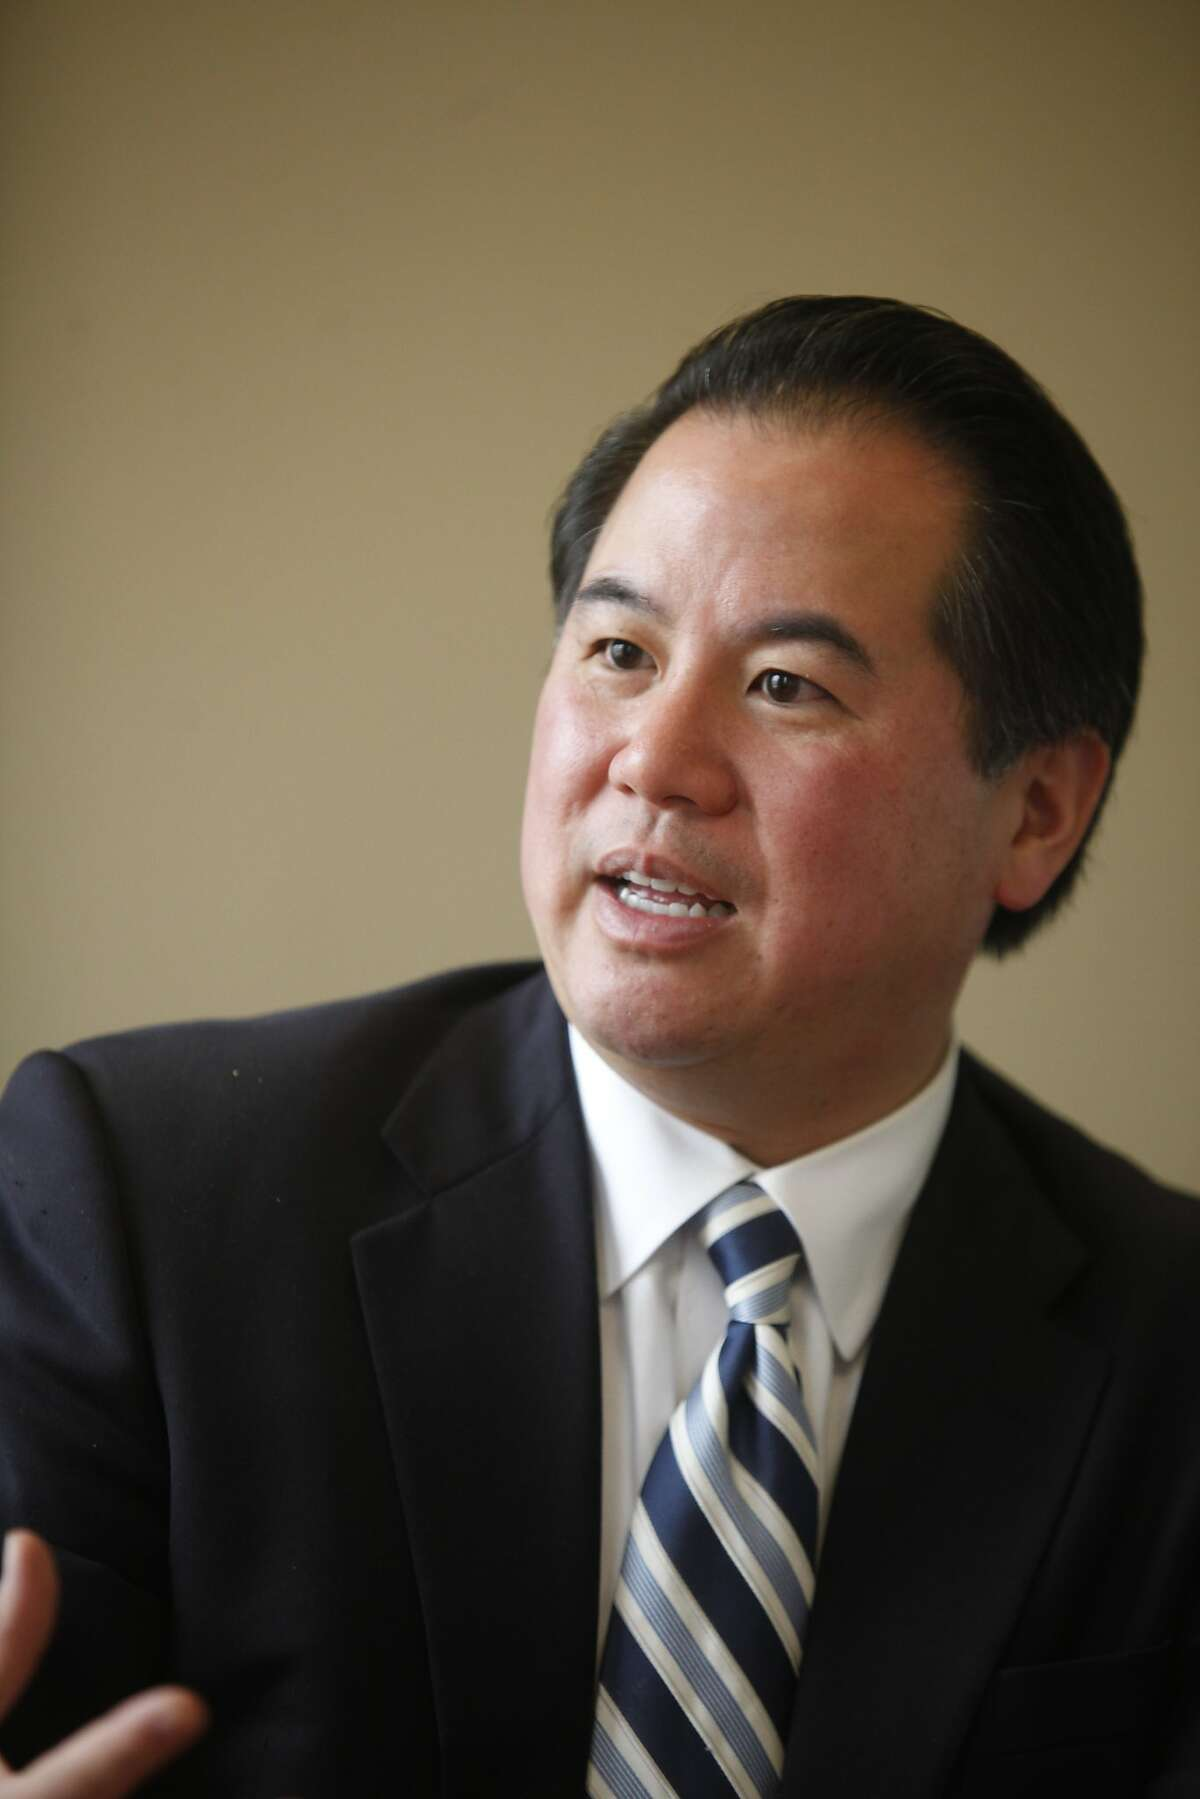 San Francisco Mayoral candidate, Phil Ting, the current Assessor-Recorder of San Francisco, talks about his platform in the San Francisco Chronicle board meeting on Wednesday Oct. 5, 2011 in San Francisco, Calif.